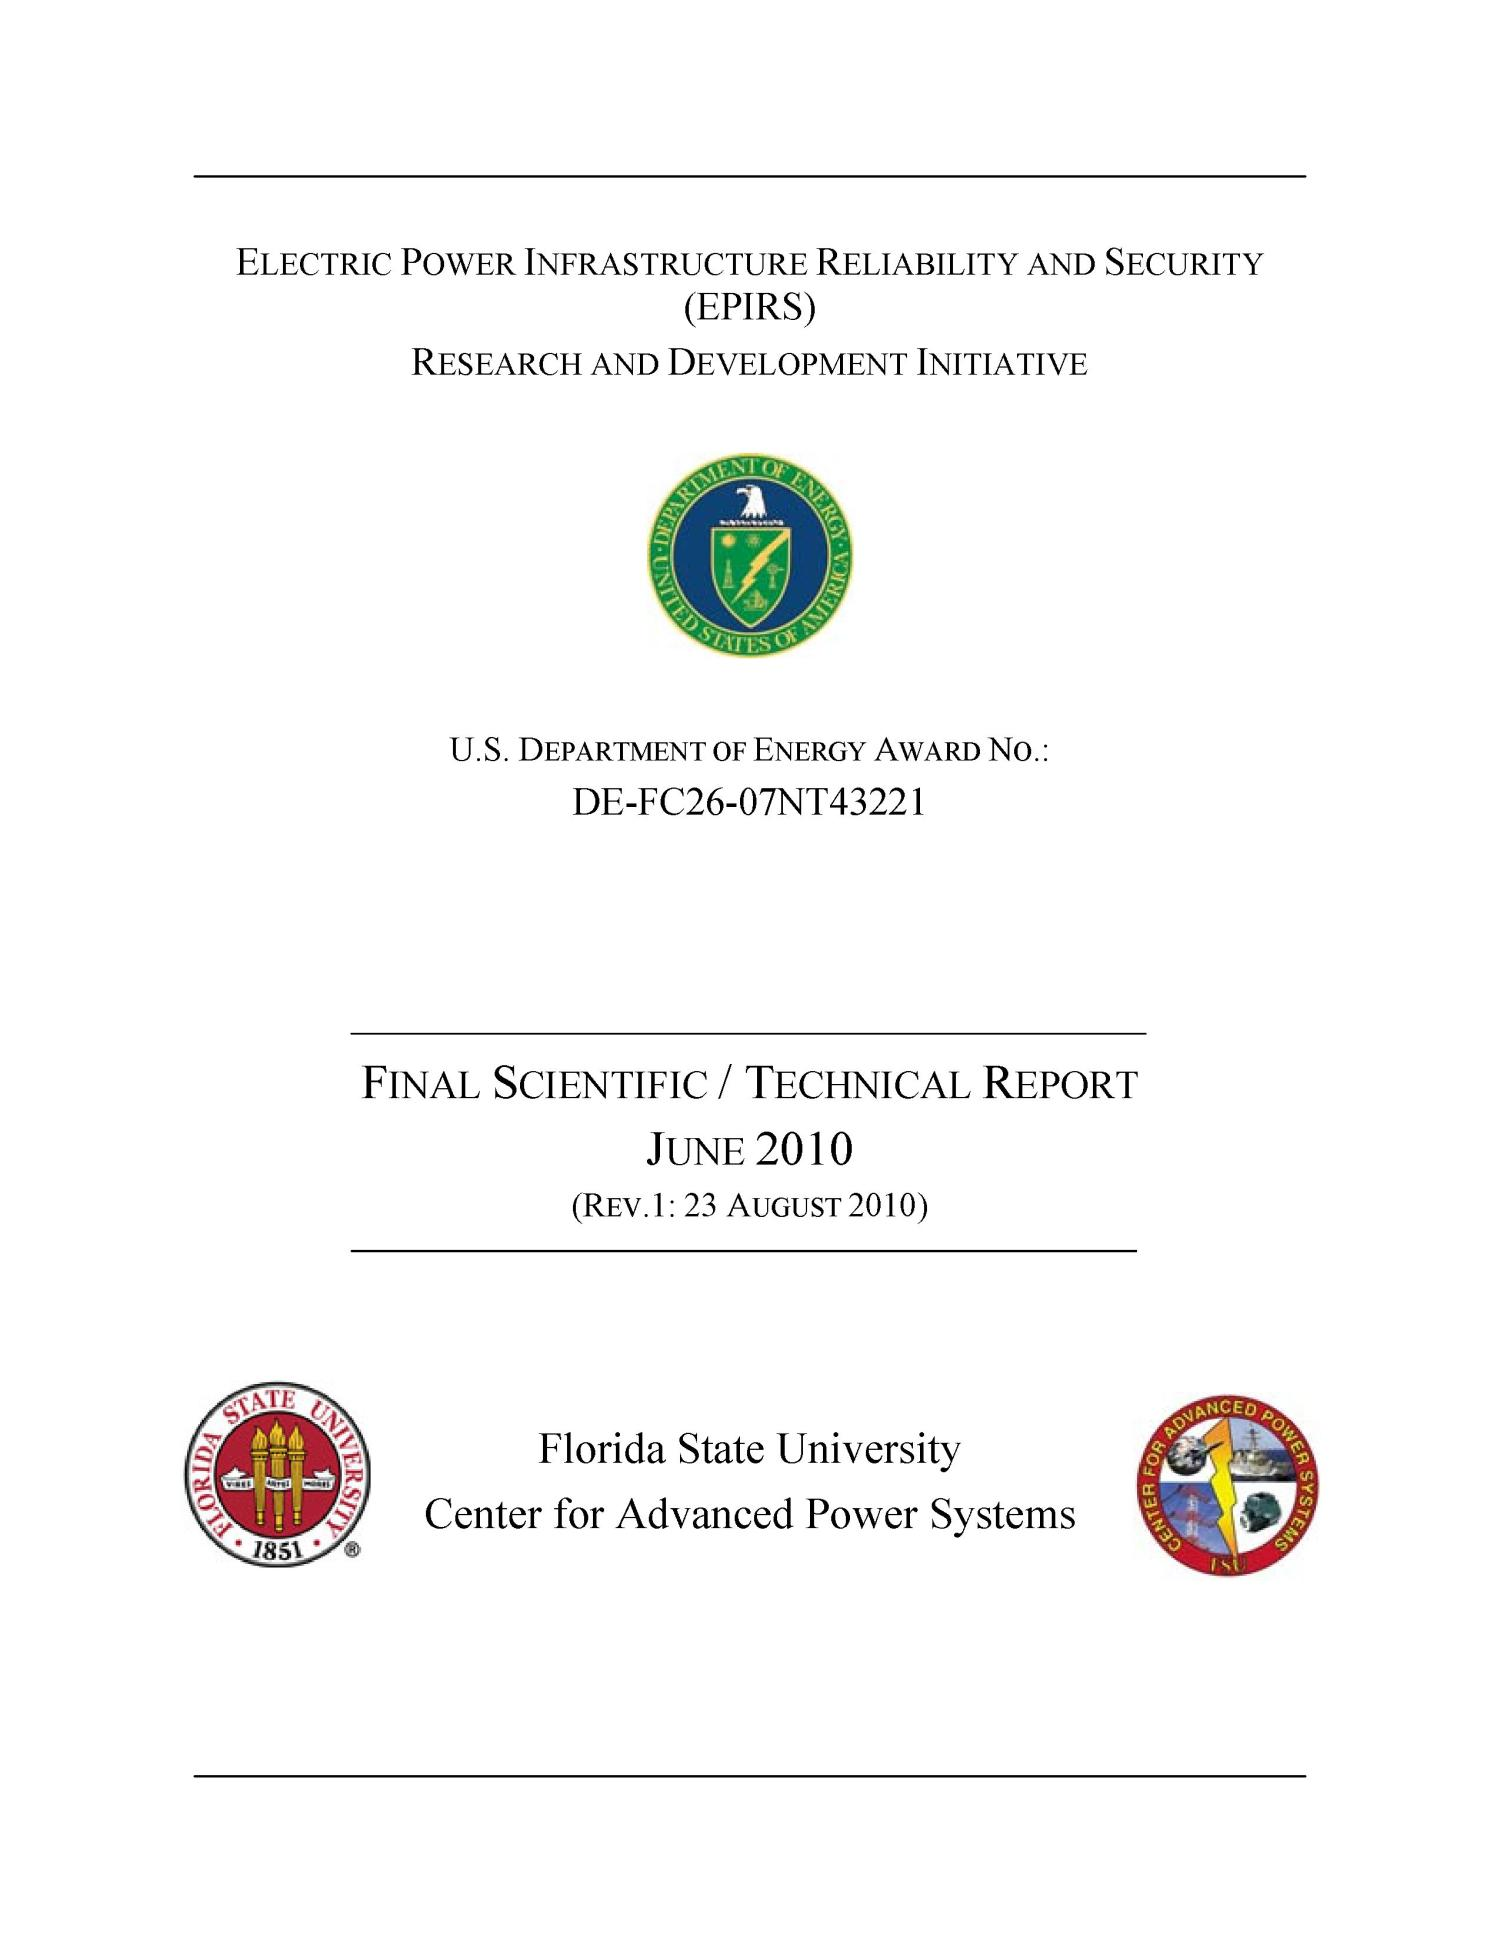 Electric Power Infrastructure Reliability and Security EPIRS